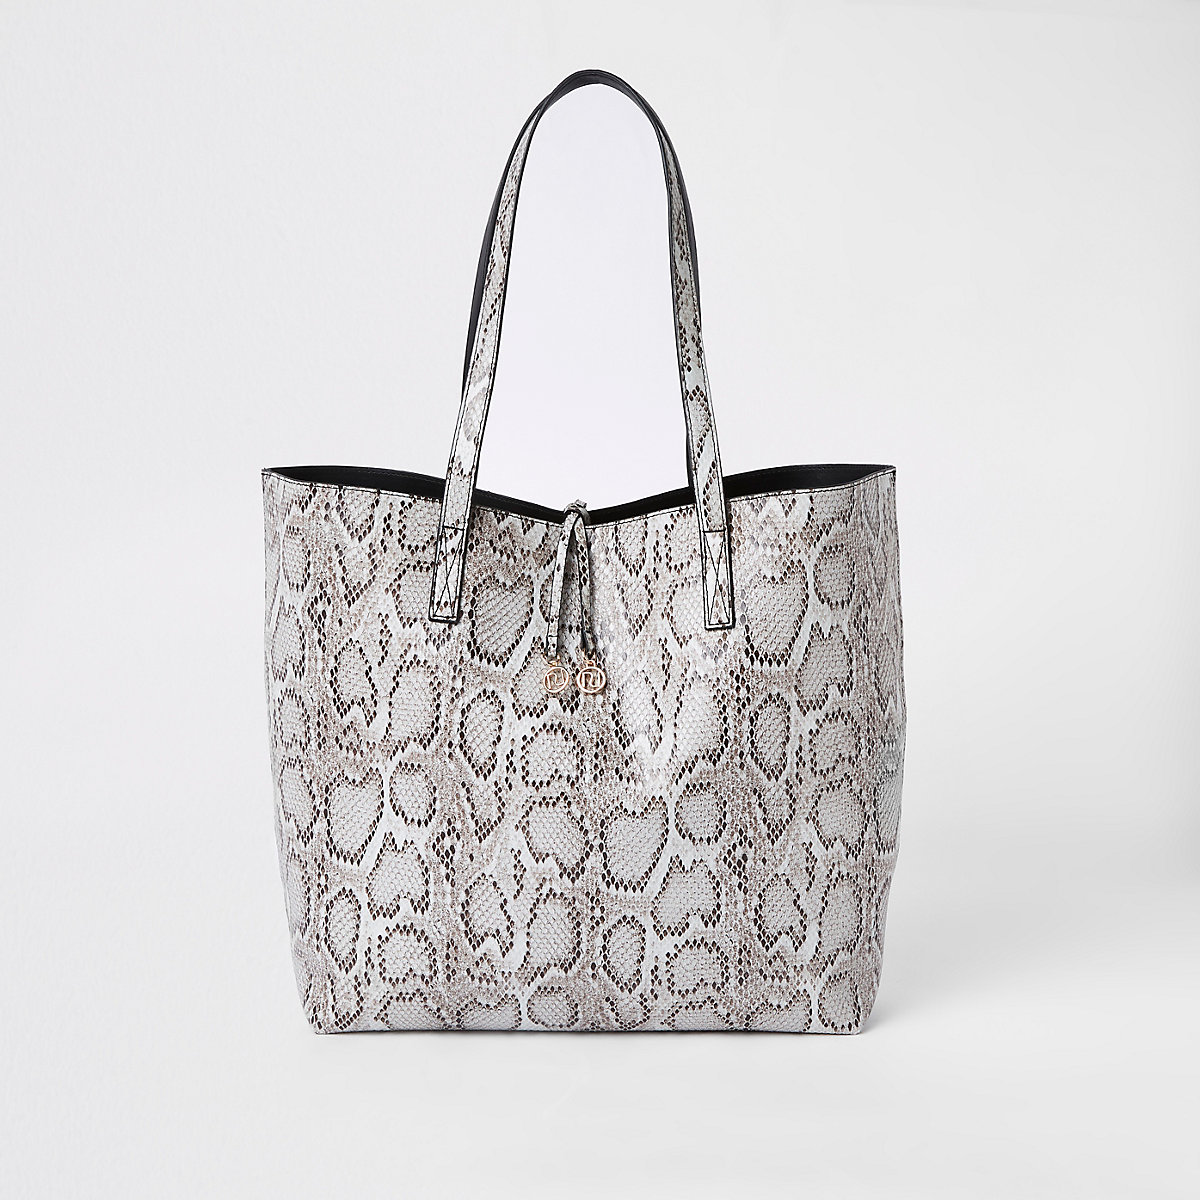 8149125334 The results of the research white large tote bag